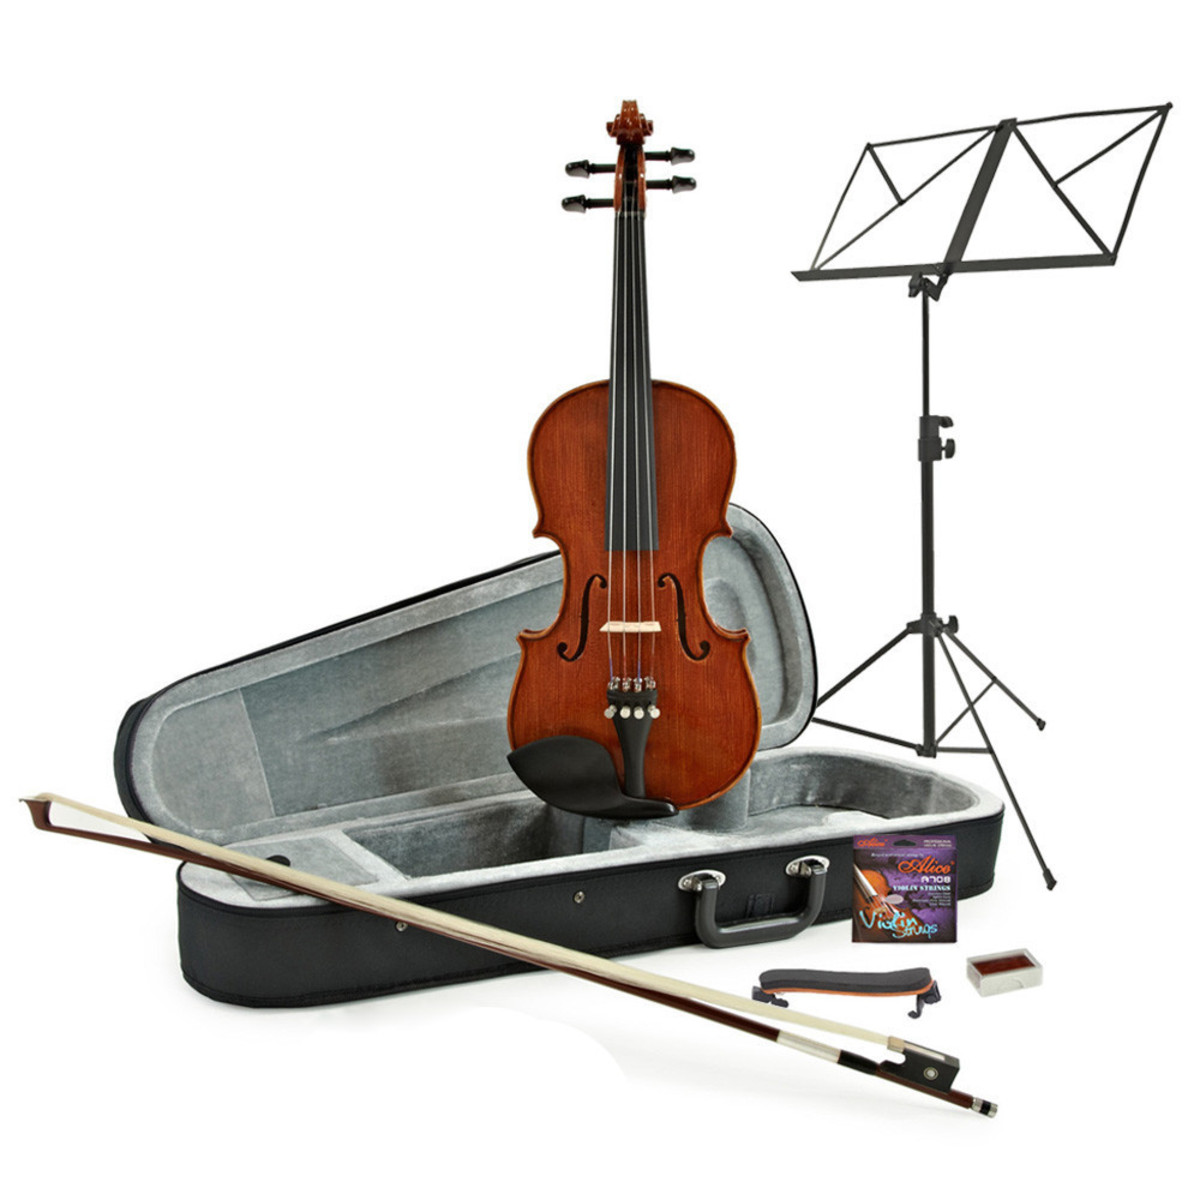 Image of Deluxe 1/2 Size Violin + Accessory Pack by Gear4music